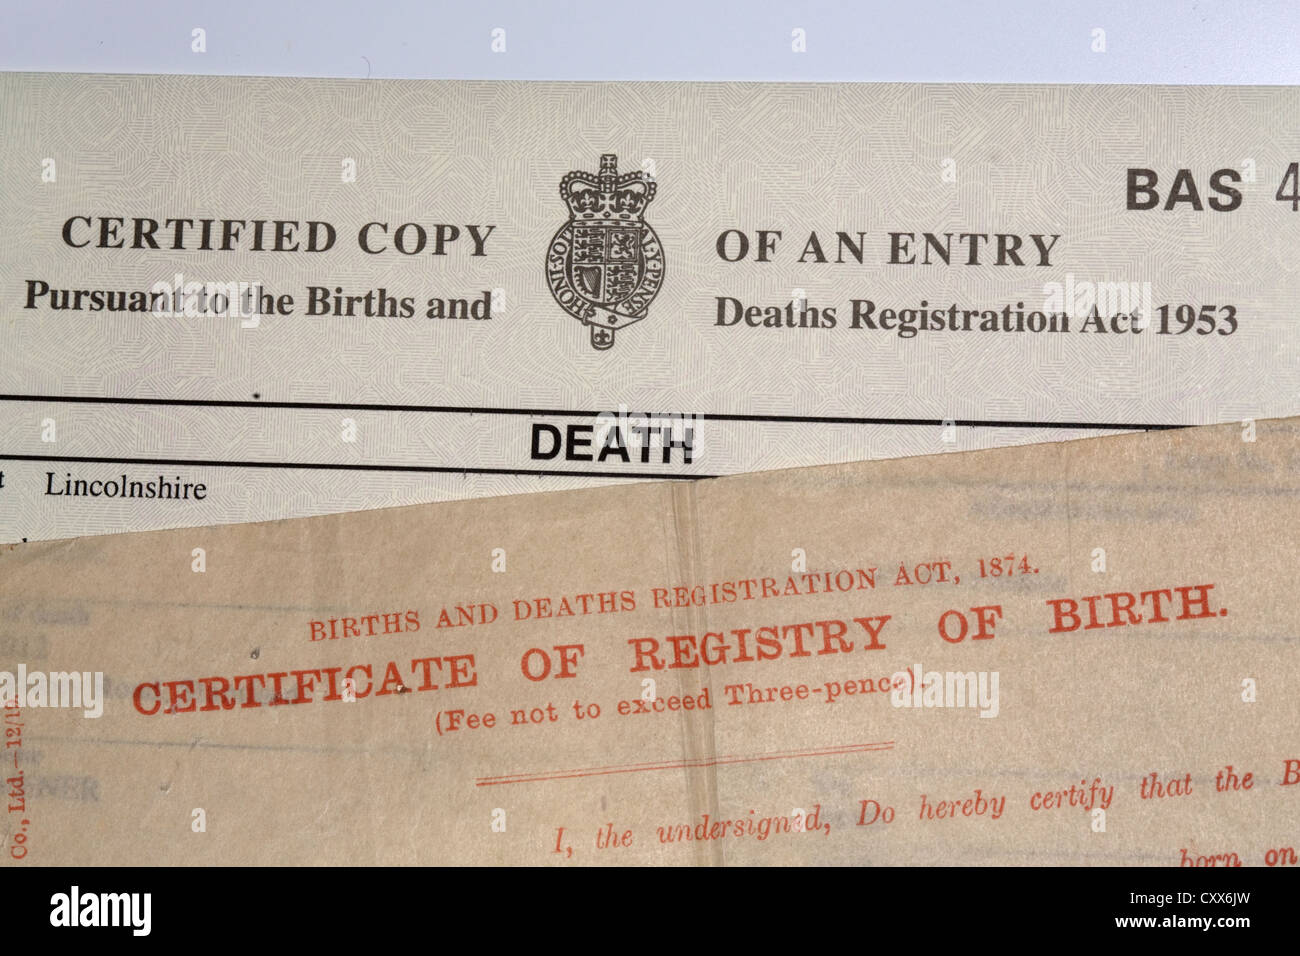 Birth And Death Certificate Stock Photo 50977777 Alamy